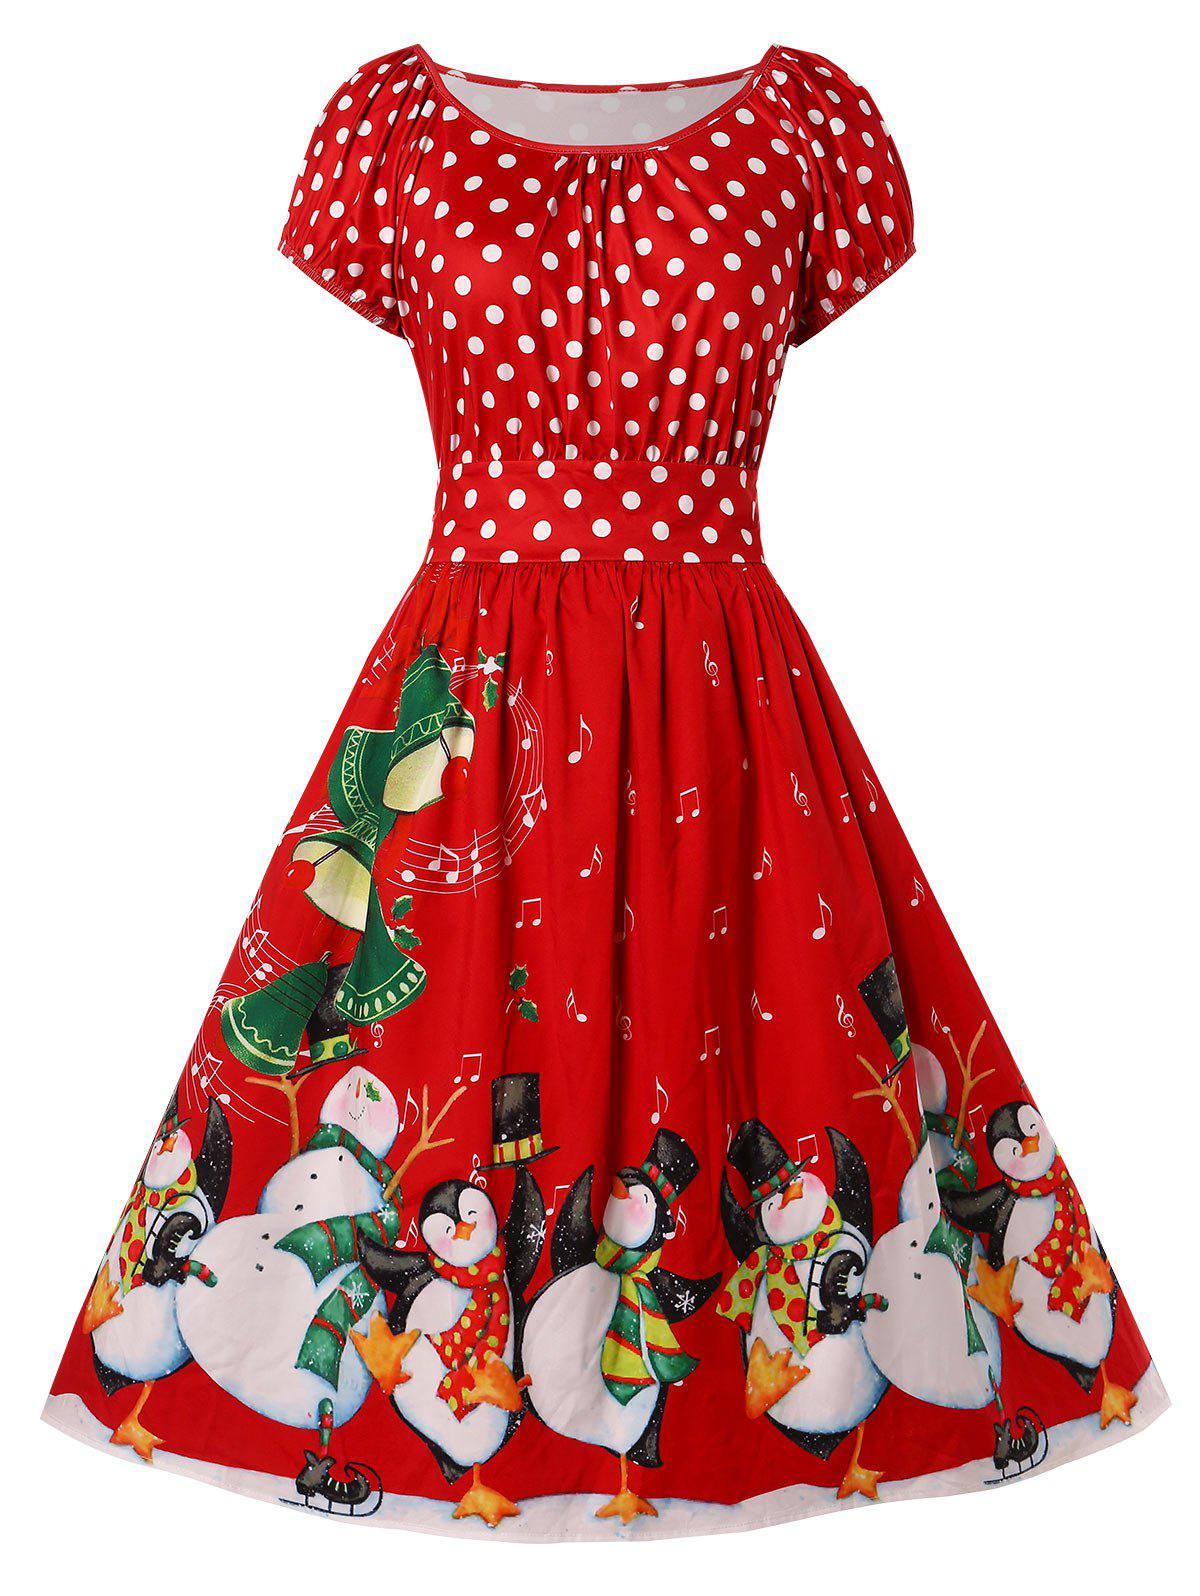 2dbc4cd743f 63% OFF   2019 Christmas Plus Size Penguin Print Flare Dress ...